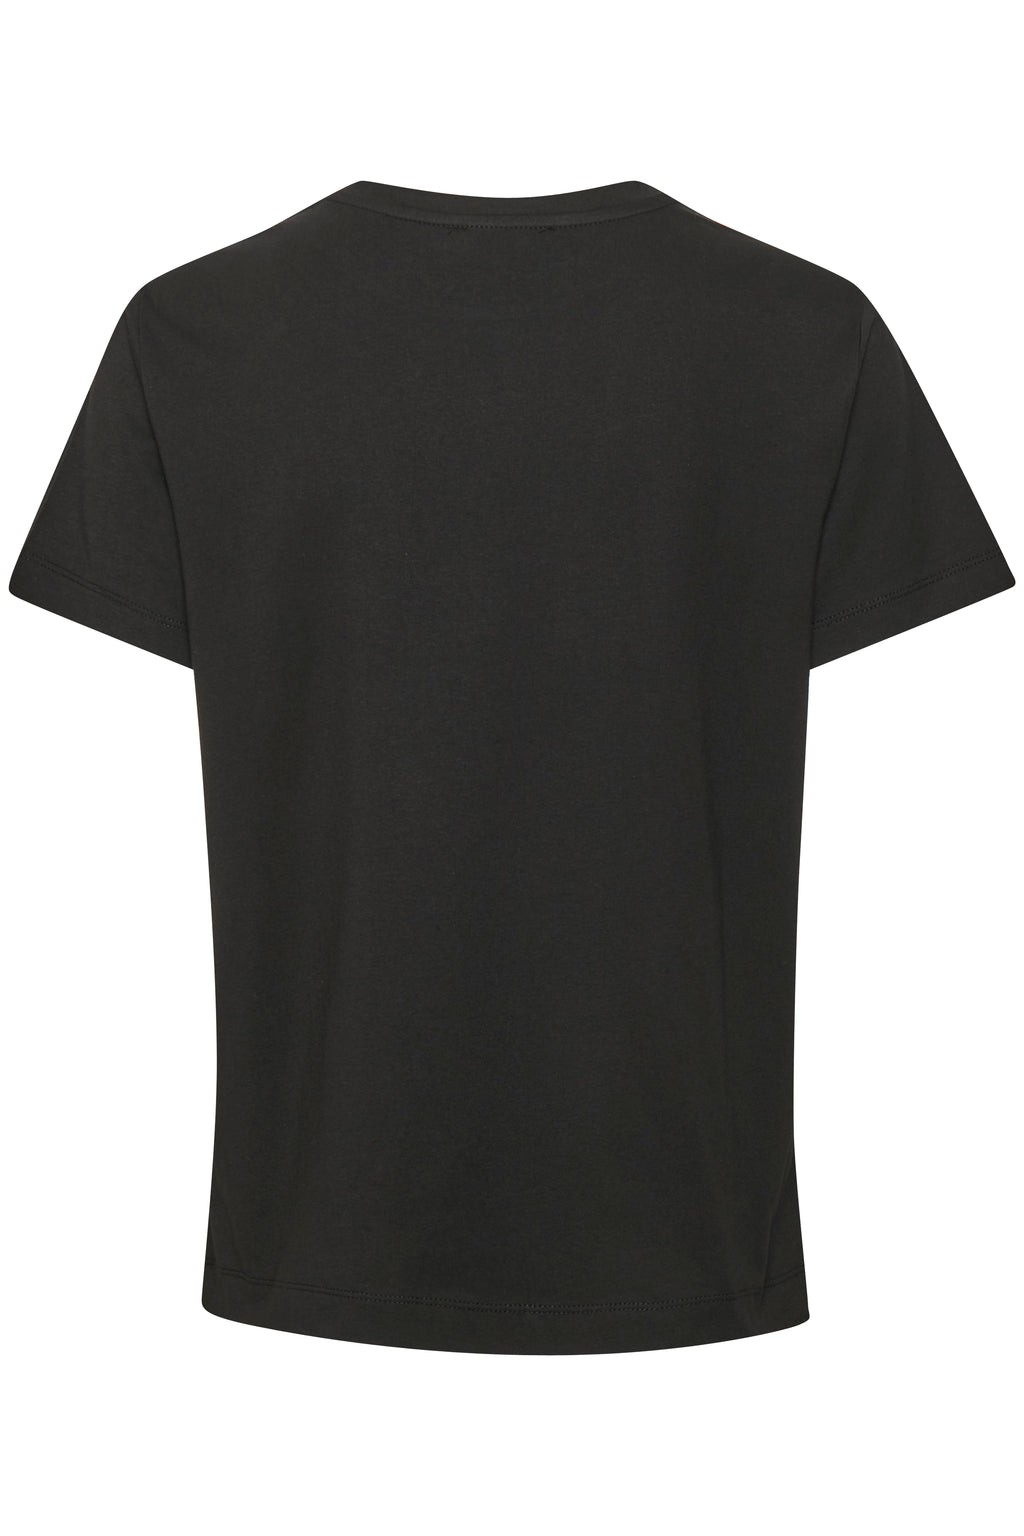 Soaked In Luxury Ishiko T-Shirt - Black